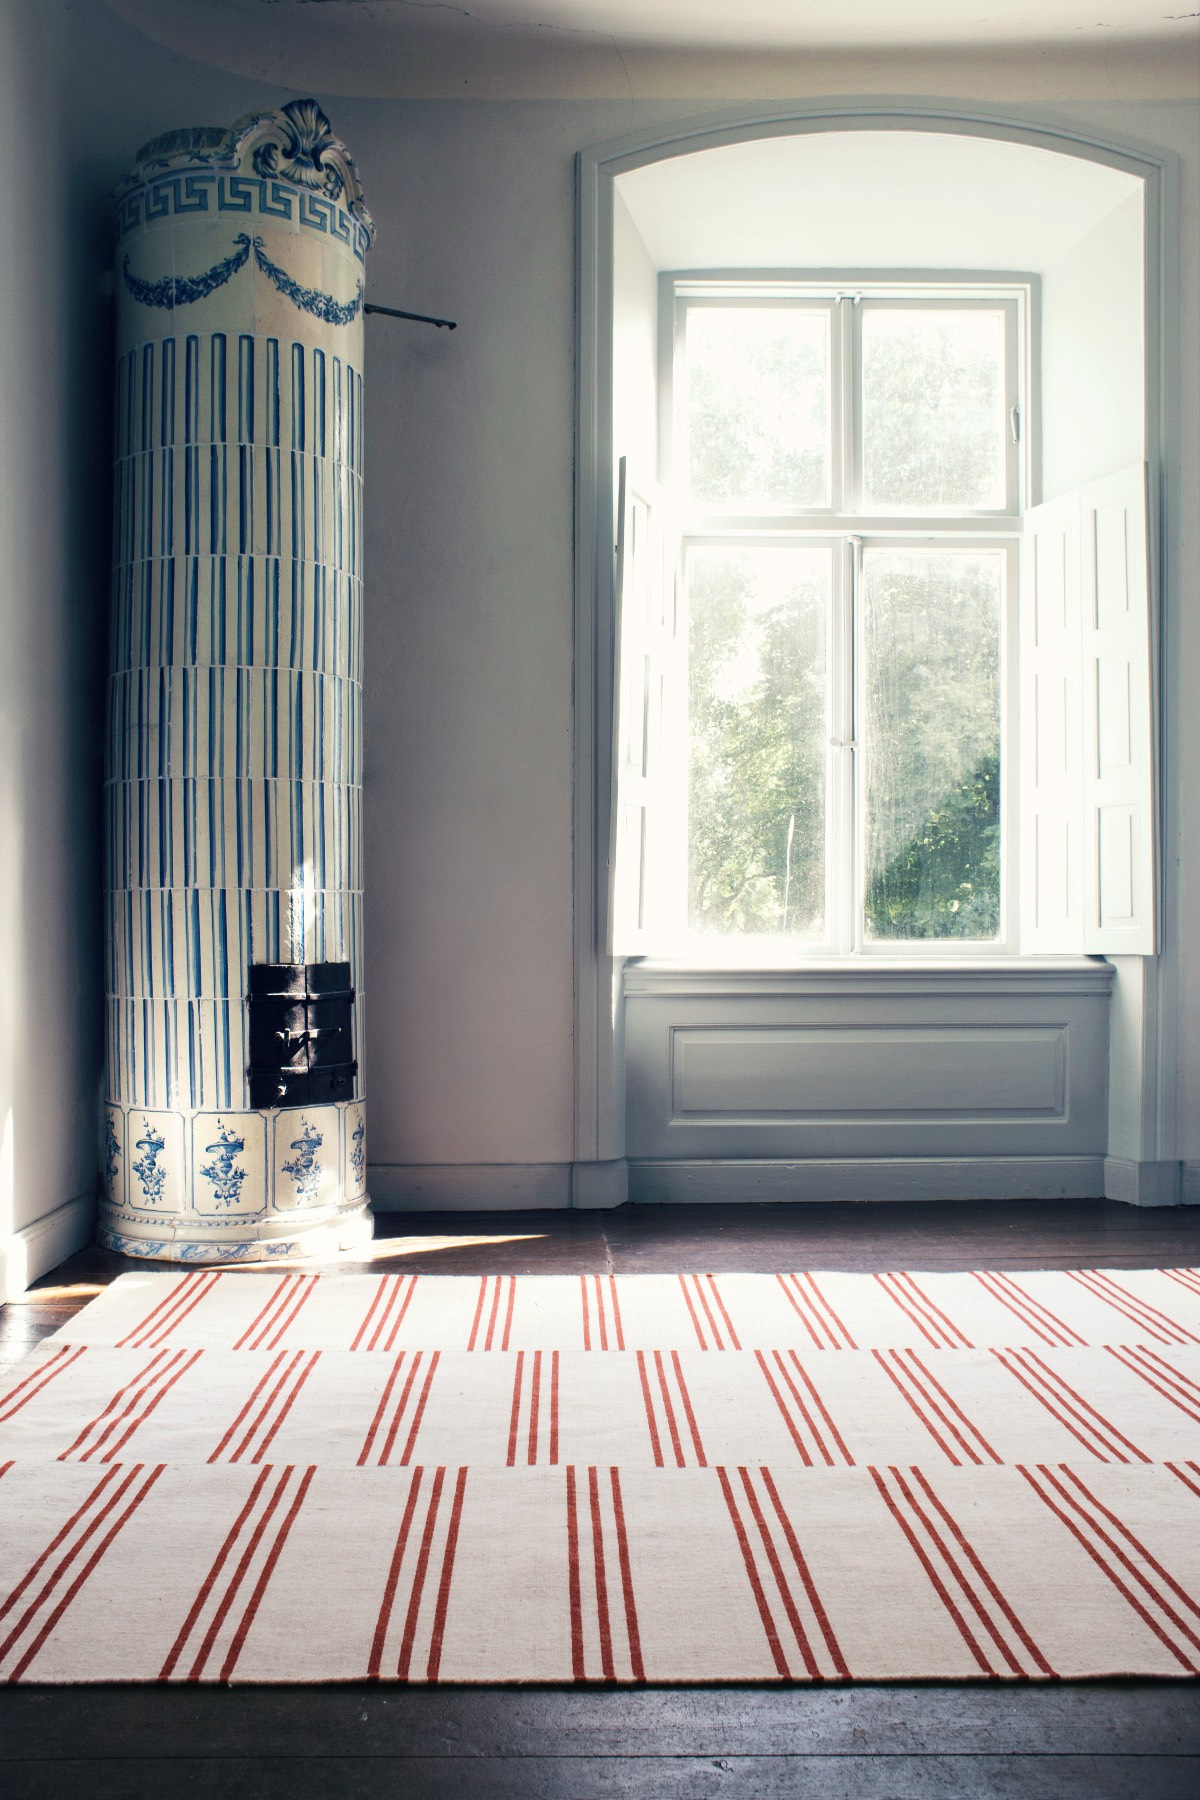 Stripes in Pink and Red in a sunny room with a beautiful tiled stove.